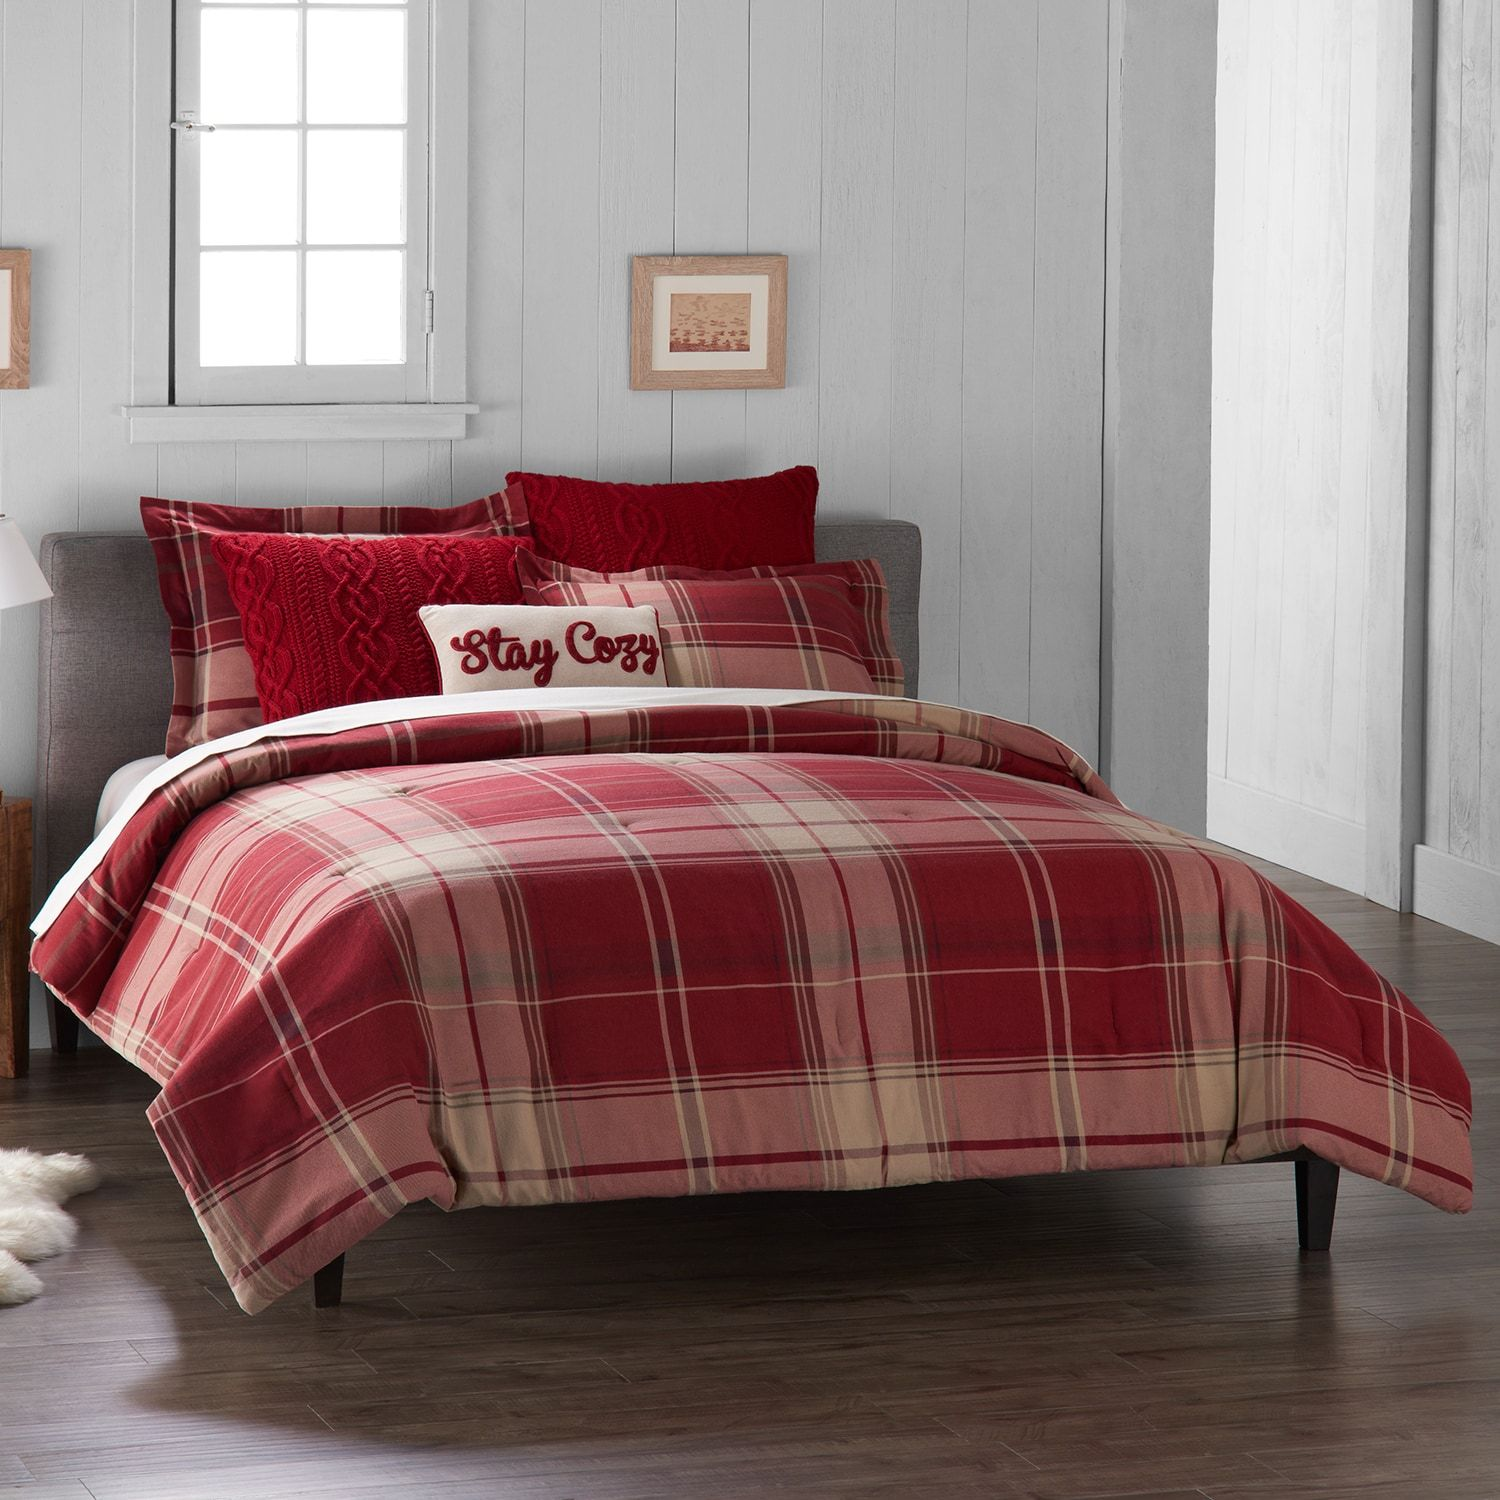 cozy cabin set lodge twin warm red black tartan down southwest pattern grey alternative duvet cover bedding lumberjack themed pin solid checked comforter plaid